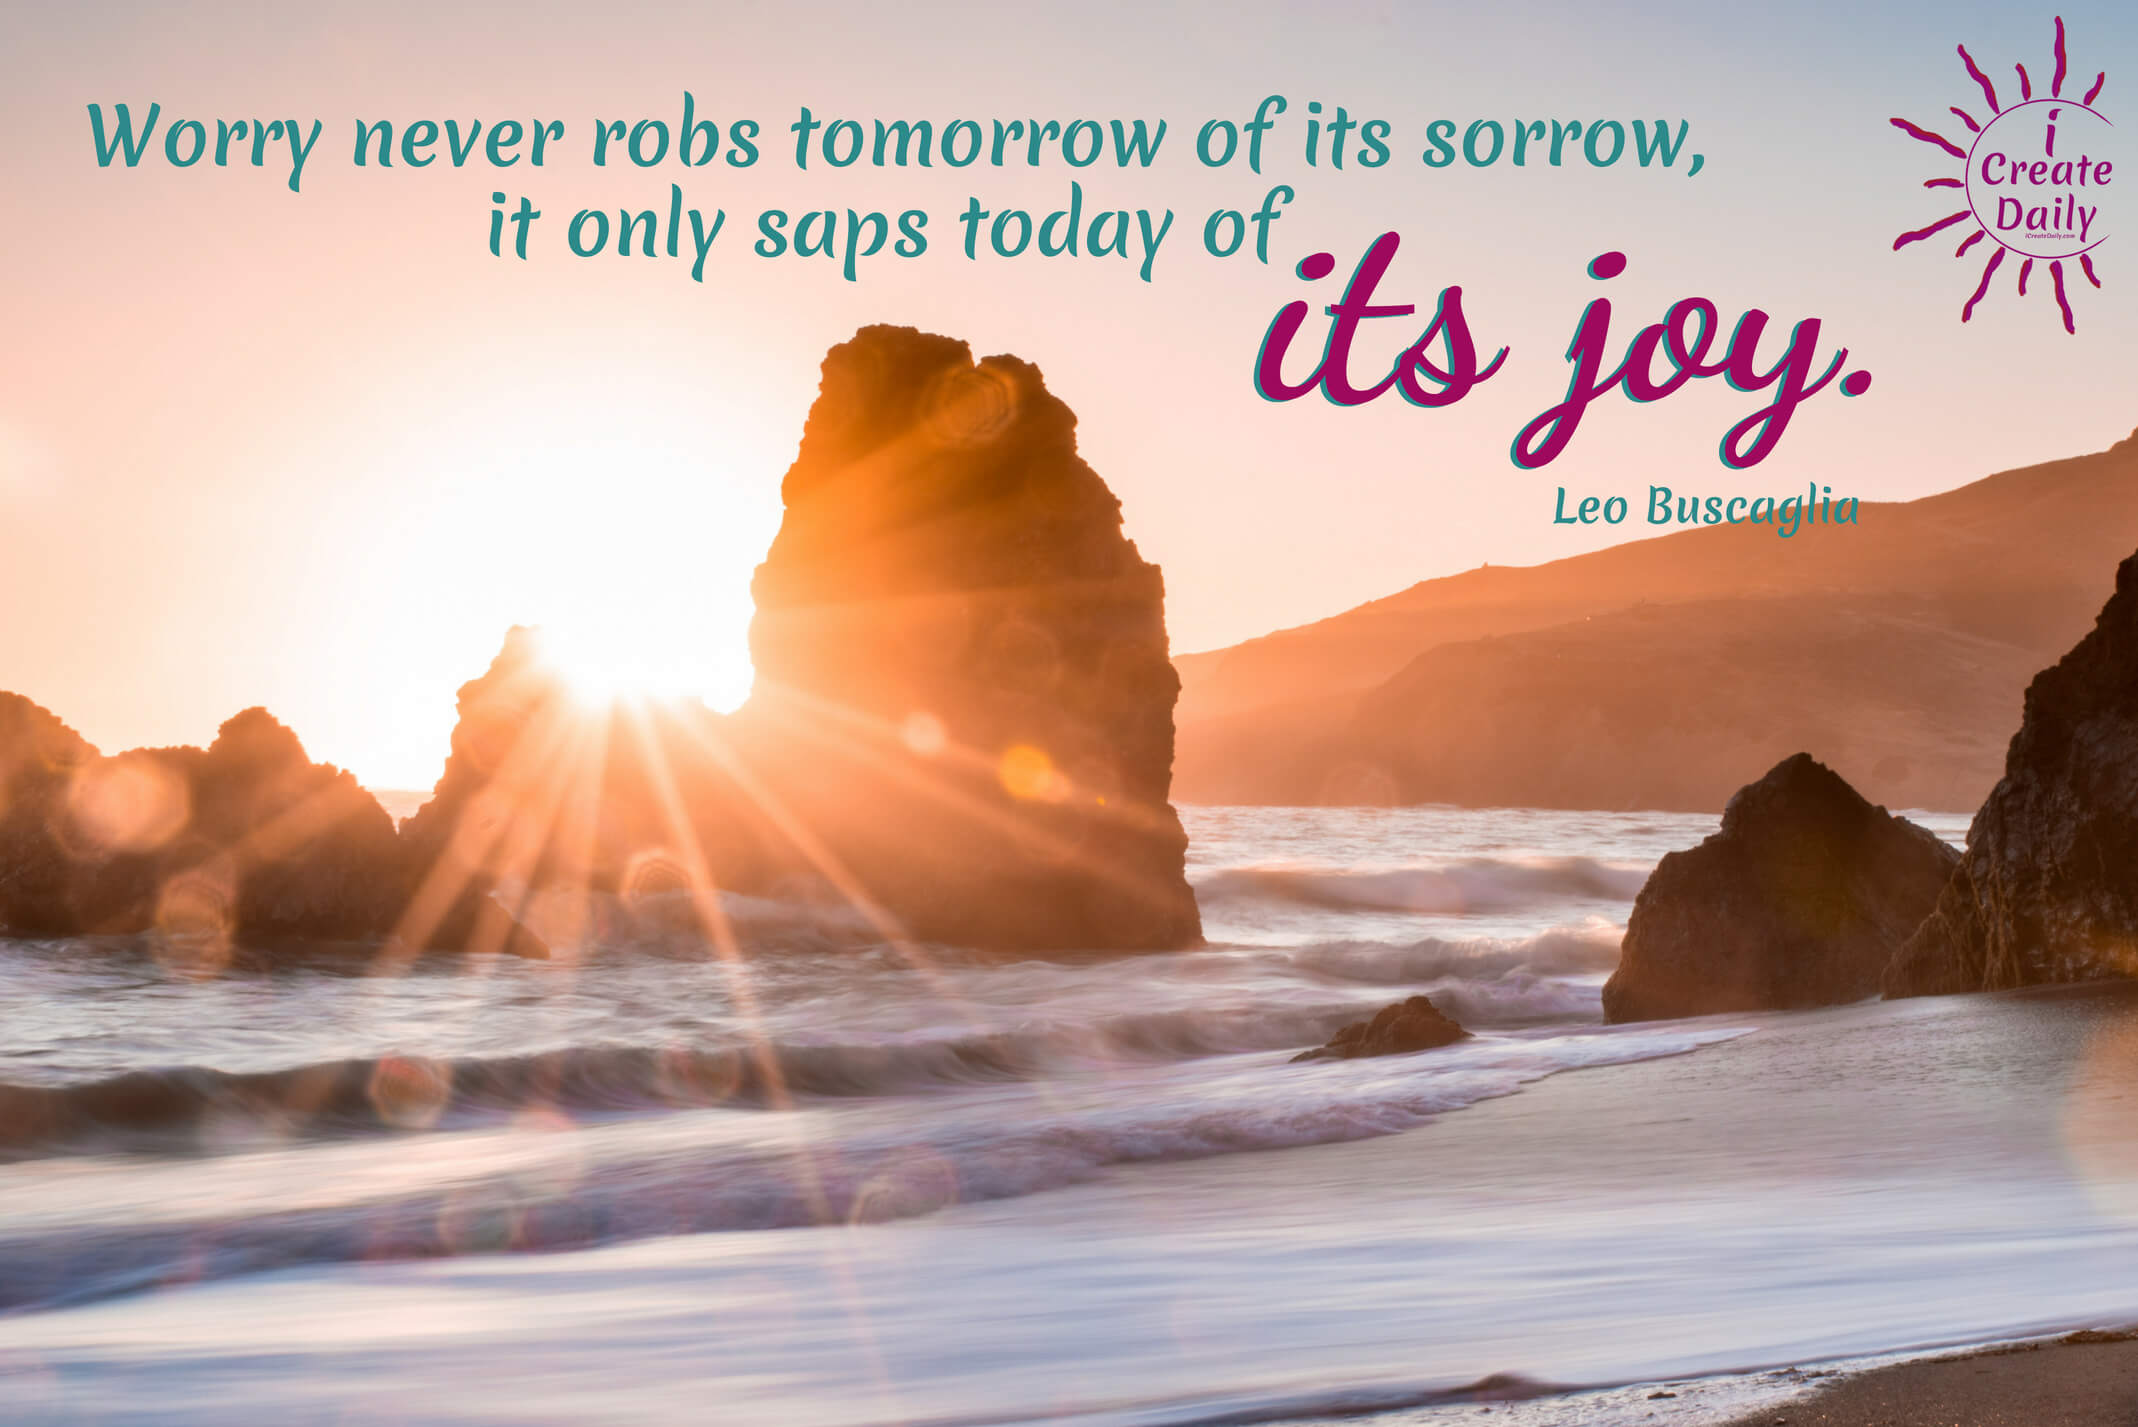 Worry never robs tomorrow of its sorrow, it only saps today of its joy. ~Leo Buscaglia #JoyQuotes #QuotesAboutJoy #DontWorryBeHappy #Joy #LeoBuscagliaQuote